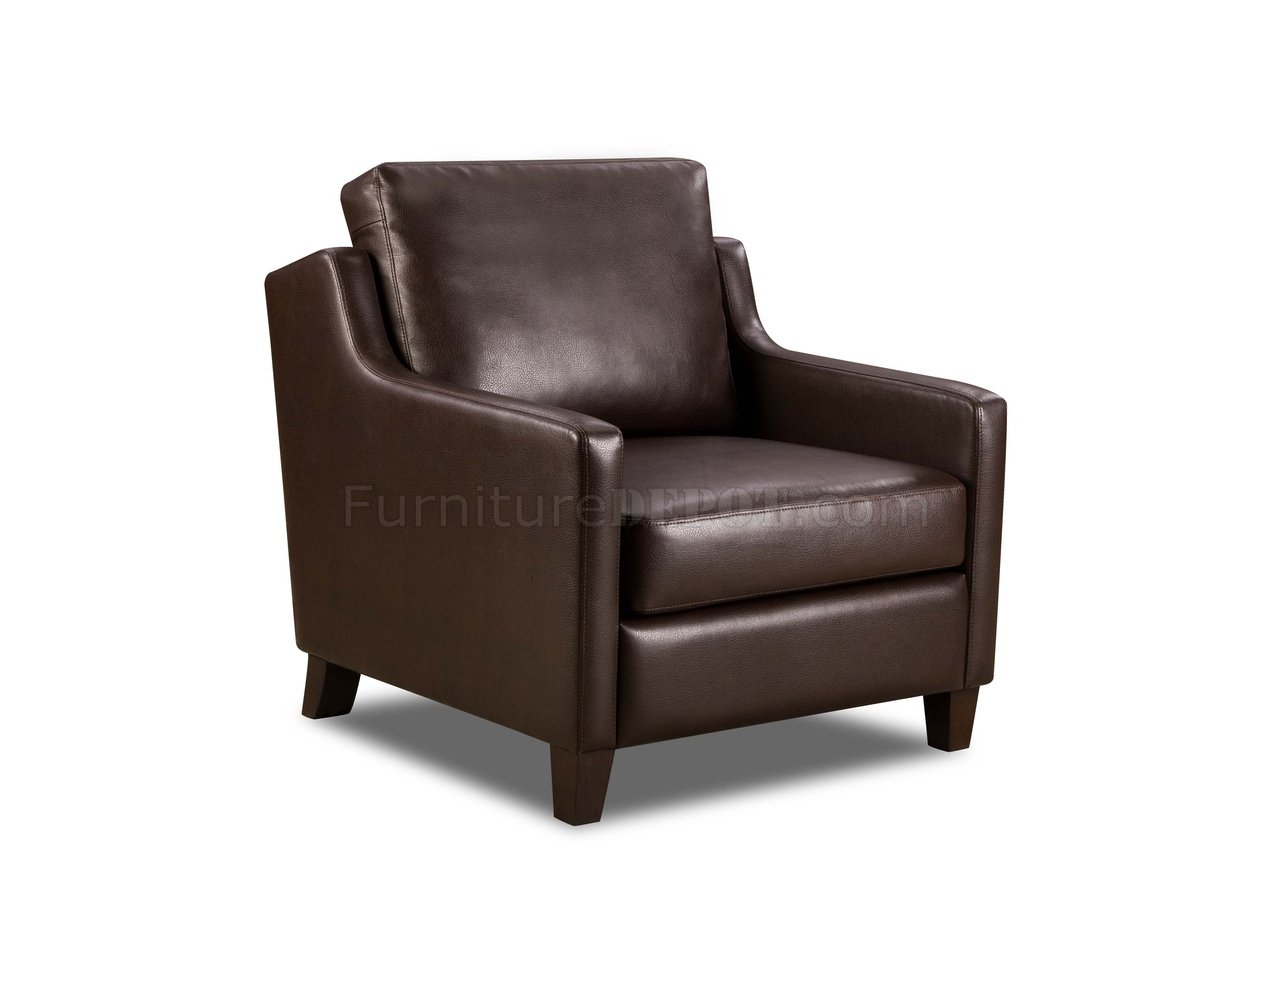 high quality fabric sectional sofa turquoise uk black or brown bonded leather modern accent chair